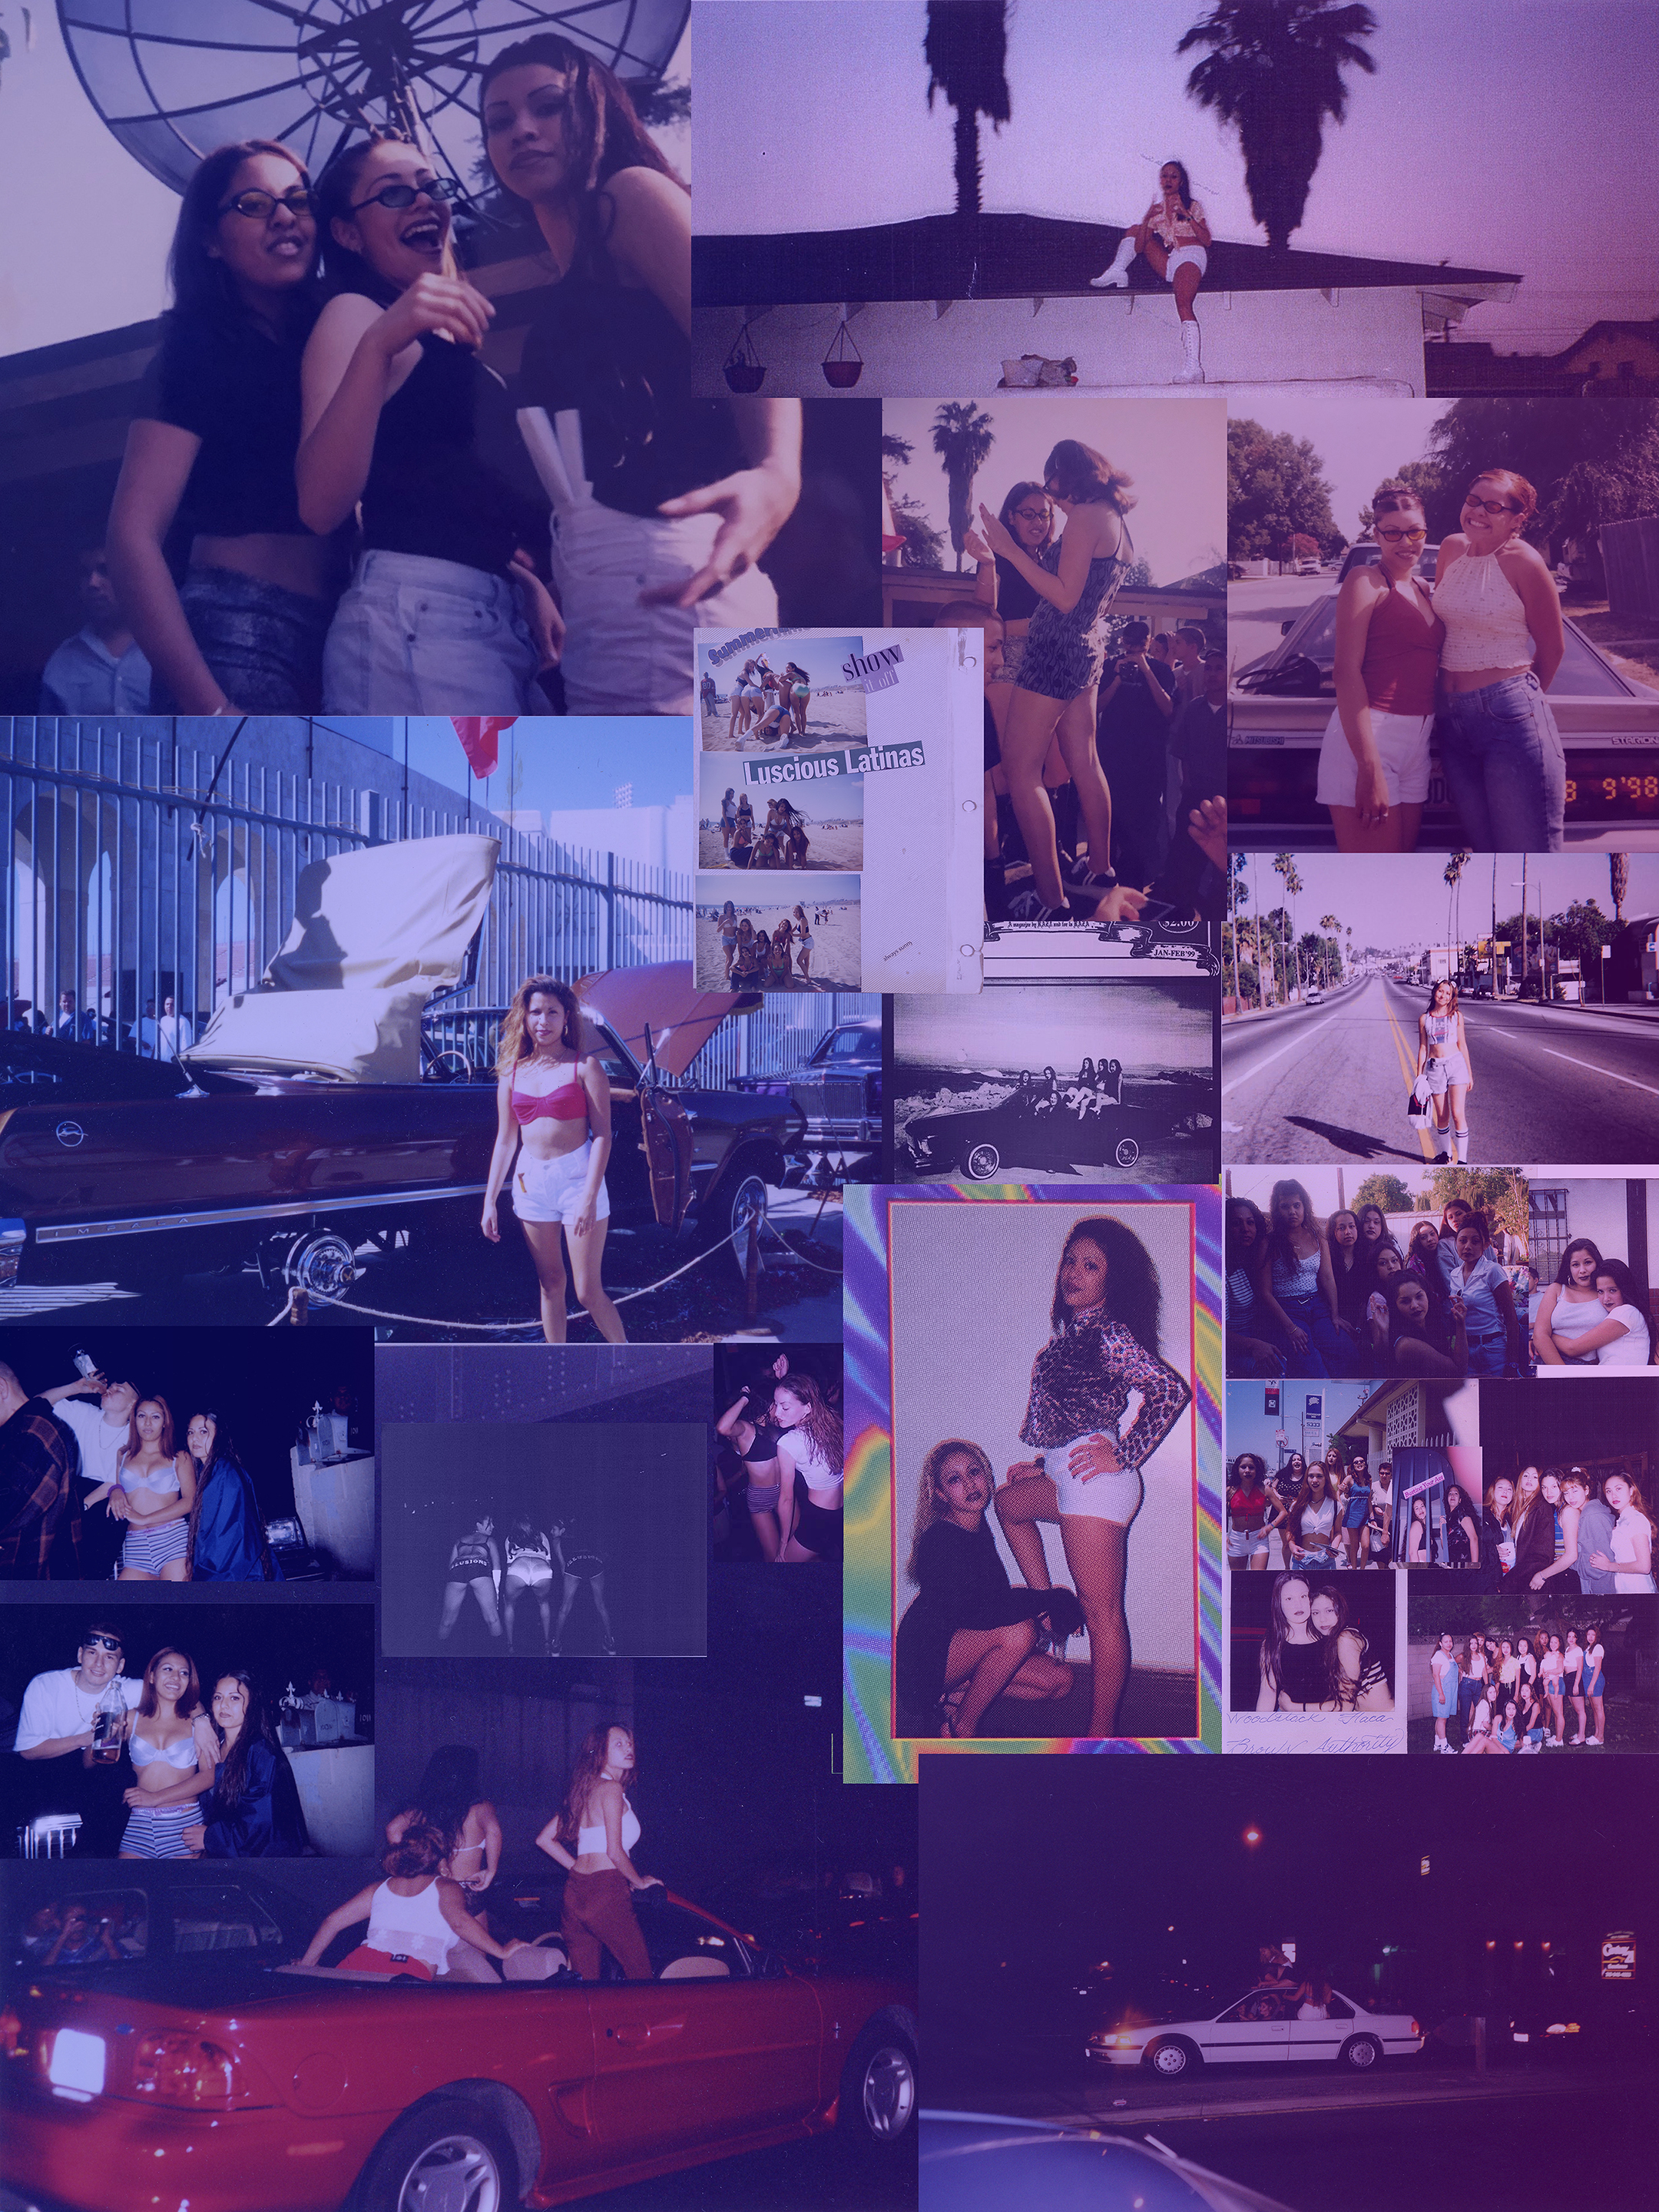 New exhibit captures memories of '90s teen culture in East LA